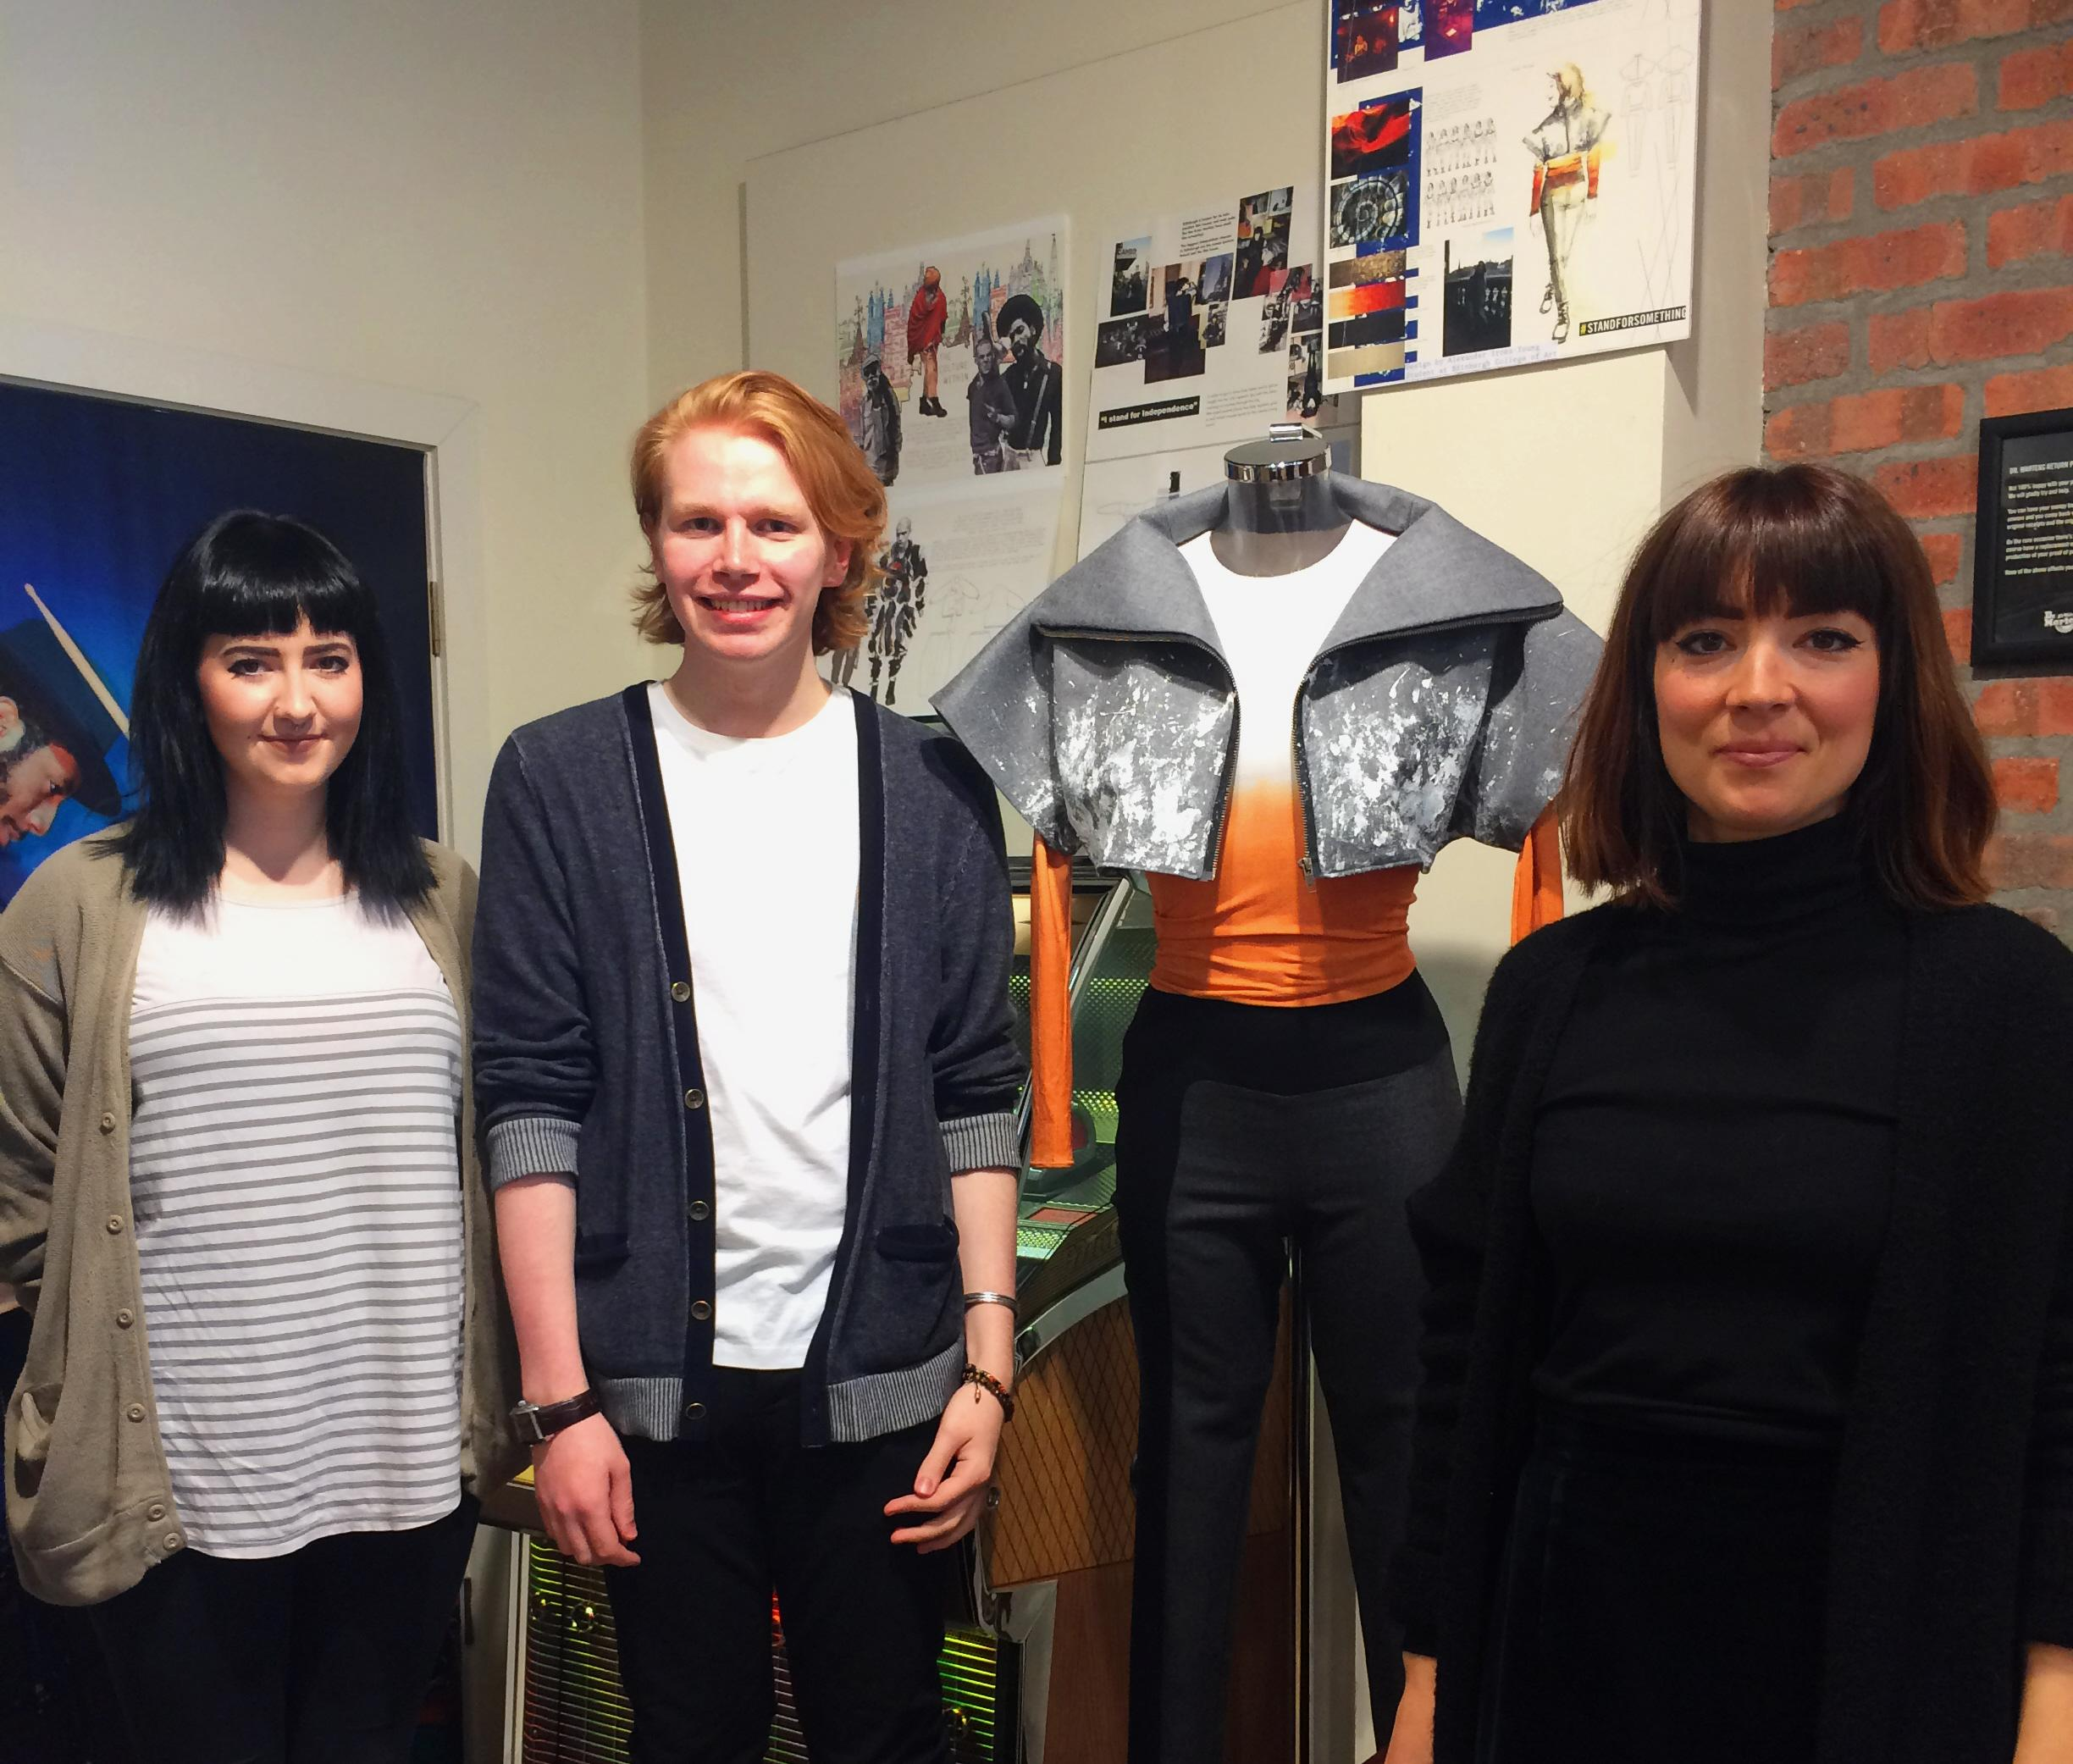 Edinburgh Store Manager Jenni Birrell, alongside Alex Irons-Young and his winning outfit. With Fashion Tutor Coline Henault.